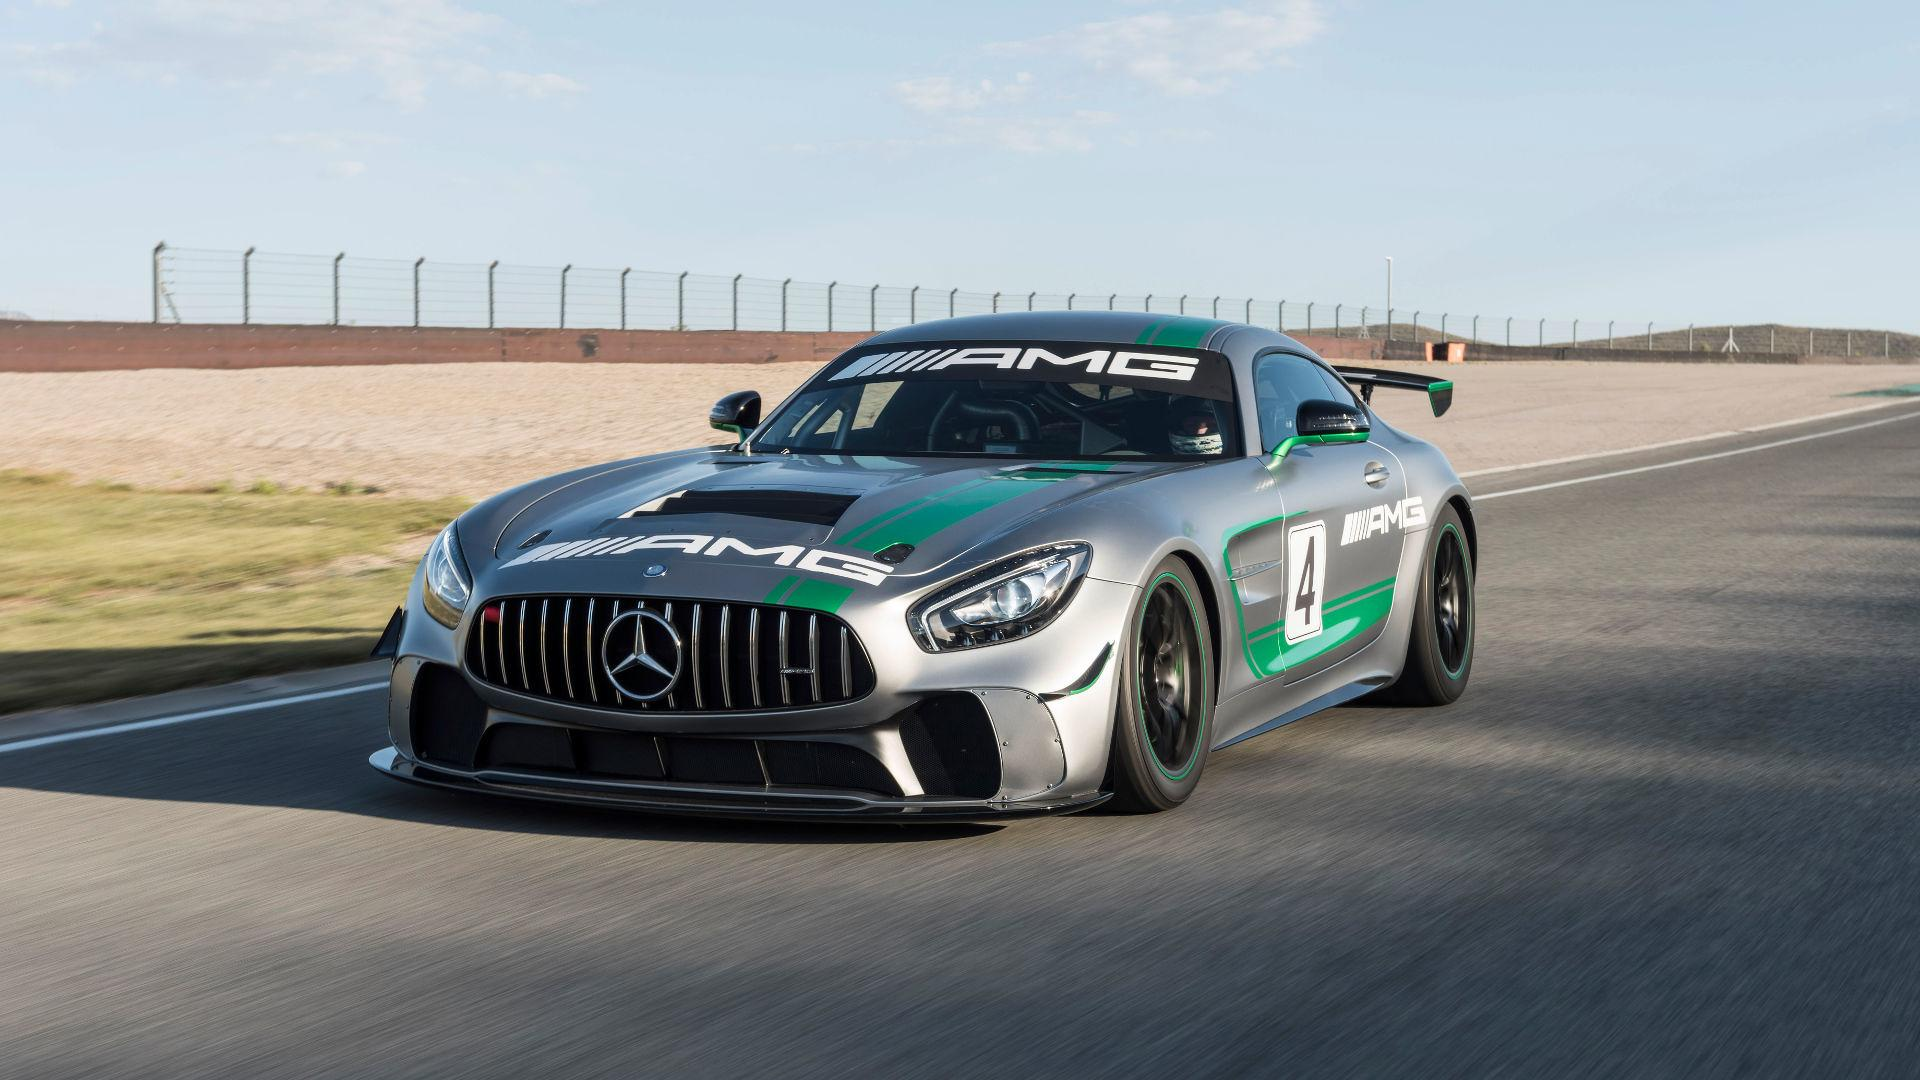 Mercedes Amg Gt4 >> Mercedes Amg Gt4 Is One Expensive Customer Racing Car